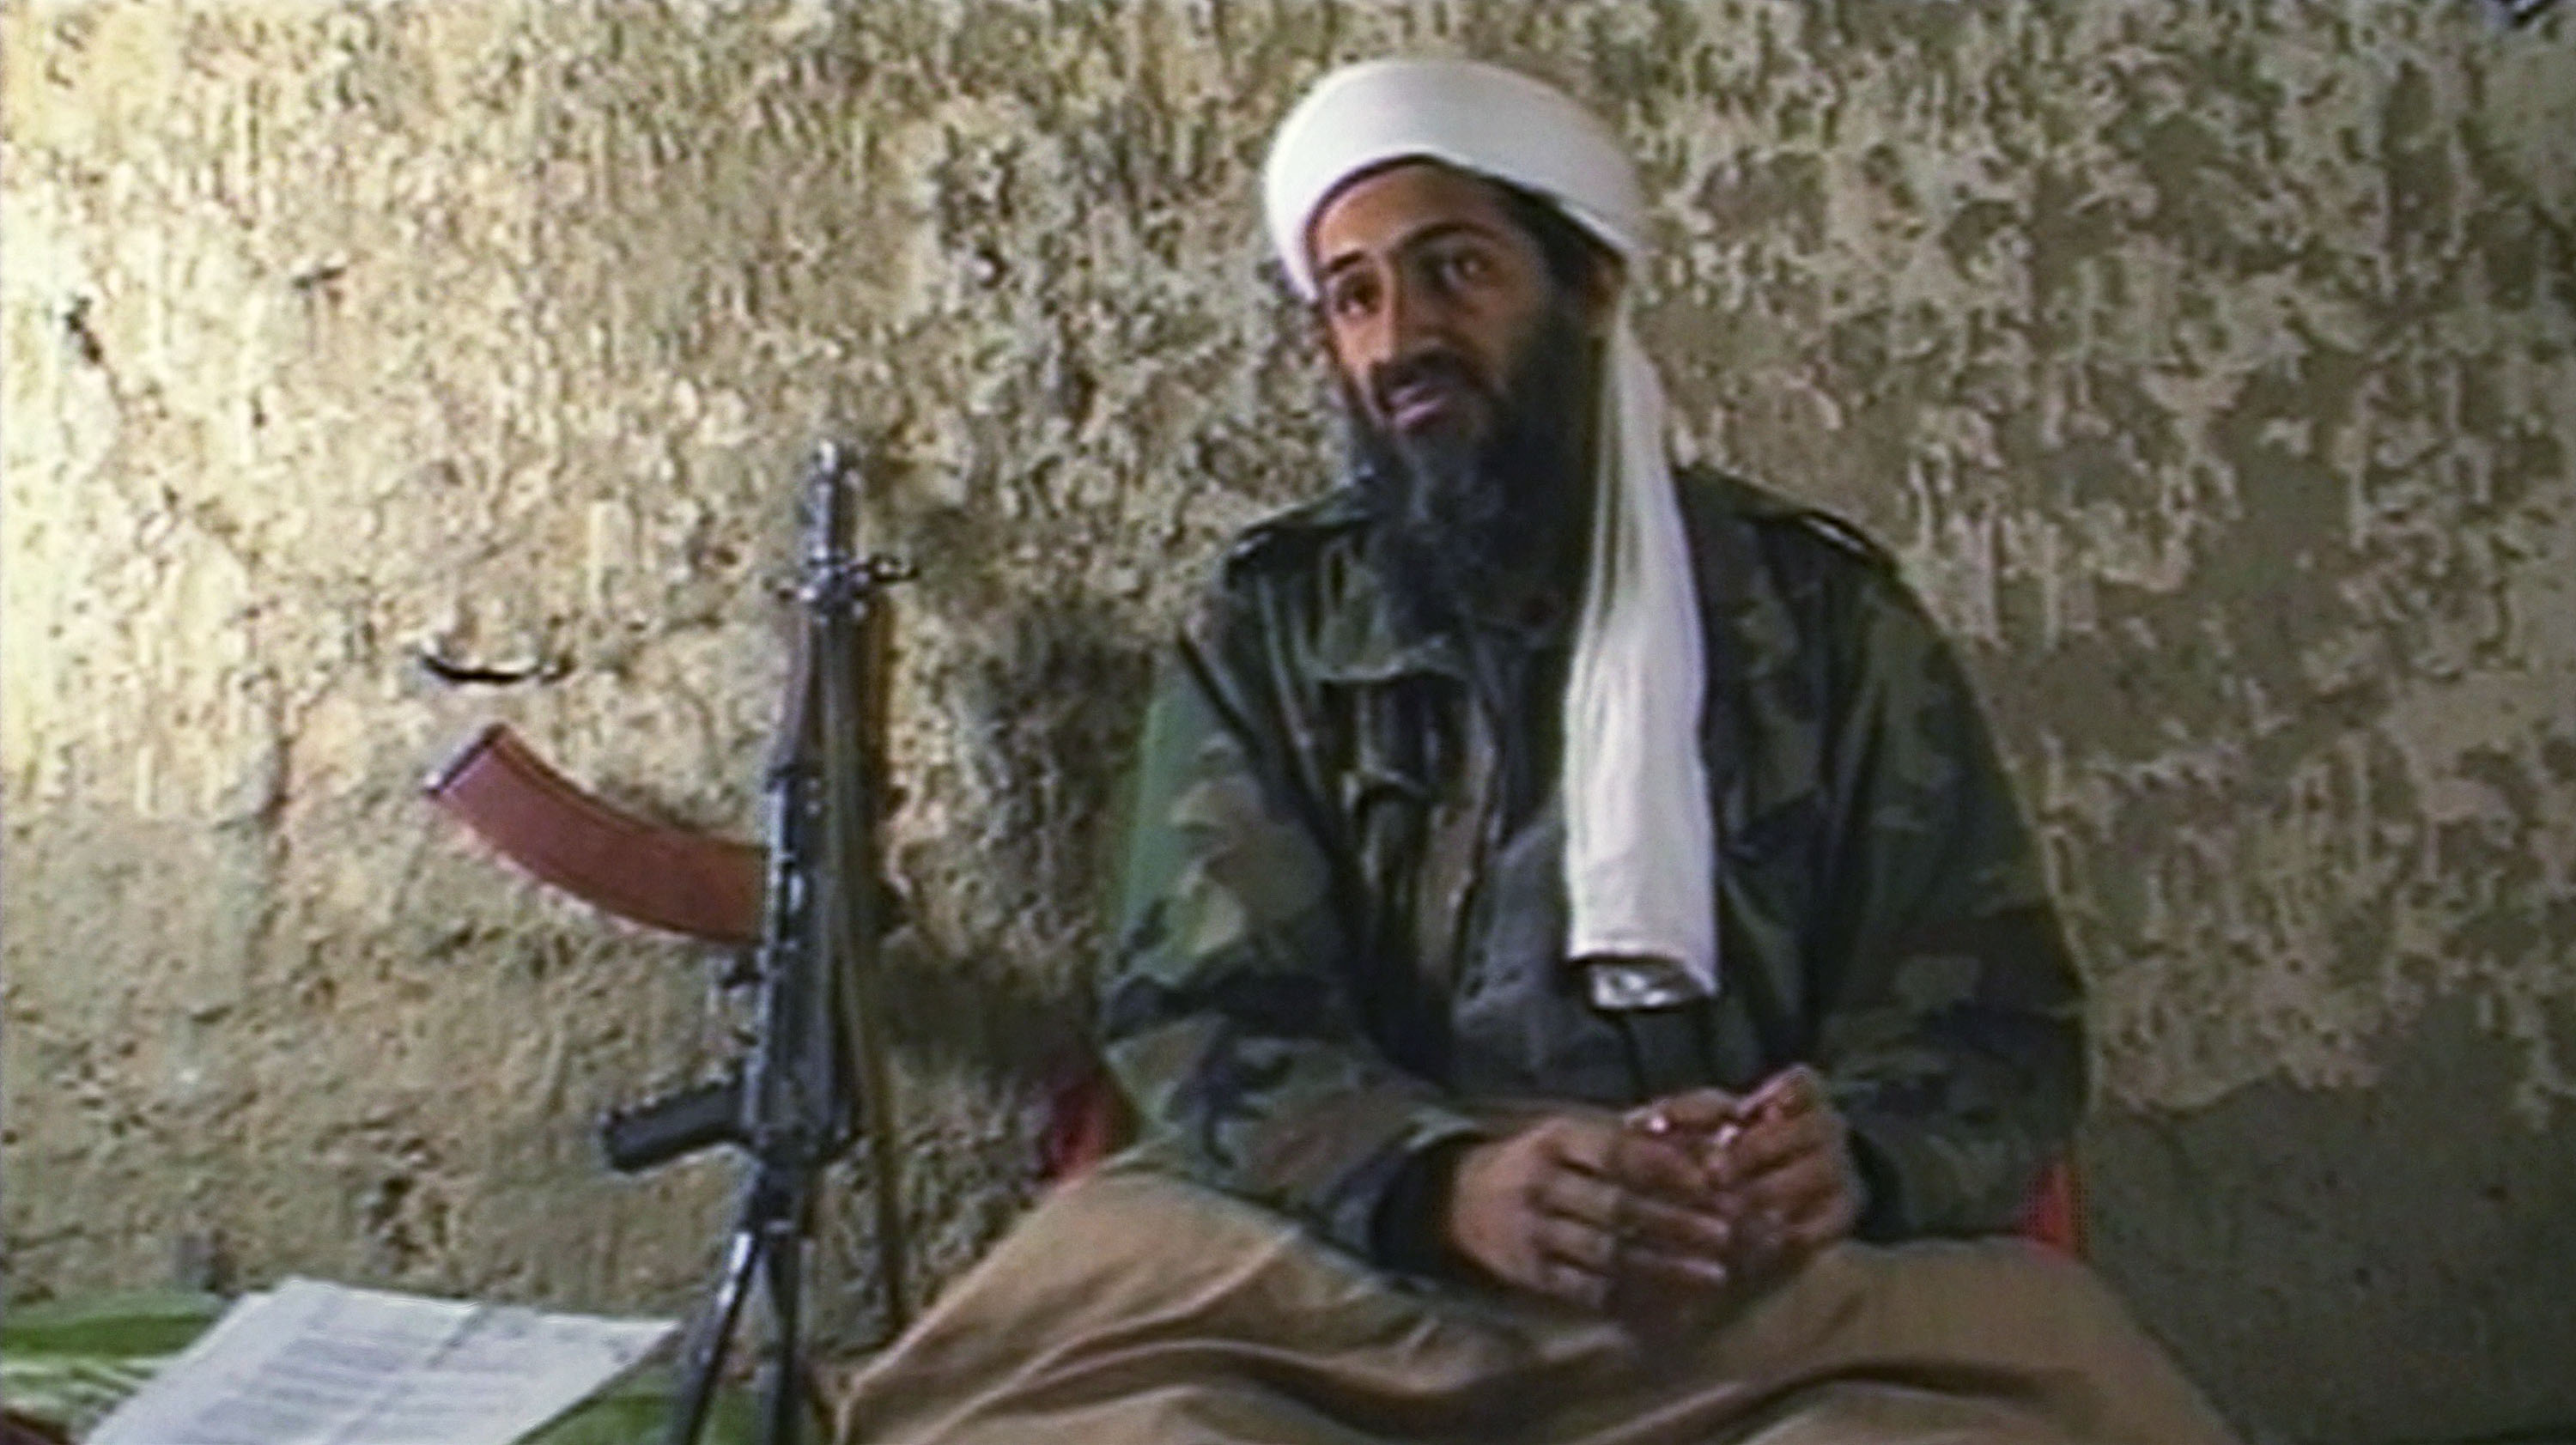 The Real Reason Osama Bin Laden Organised The 9/11 Attacks GettyImages 1374485